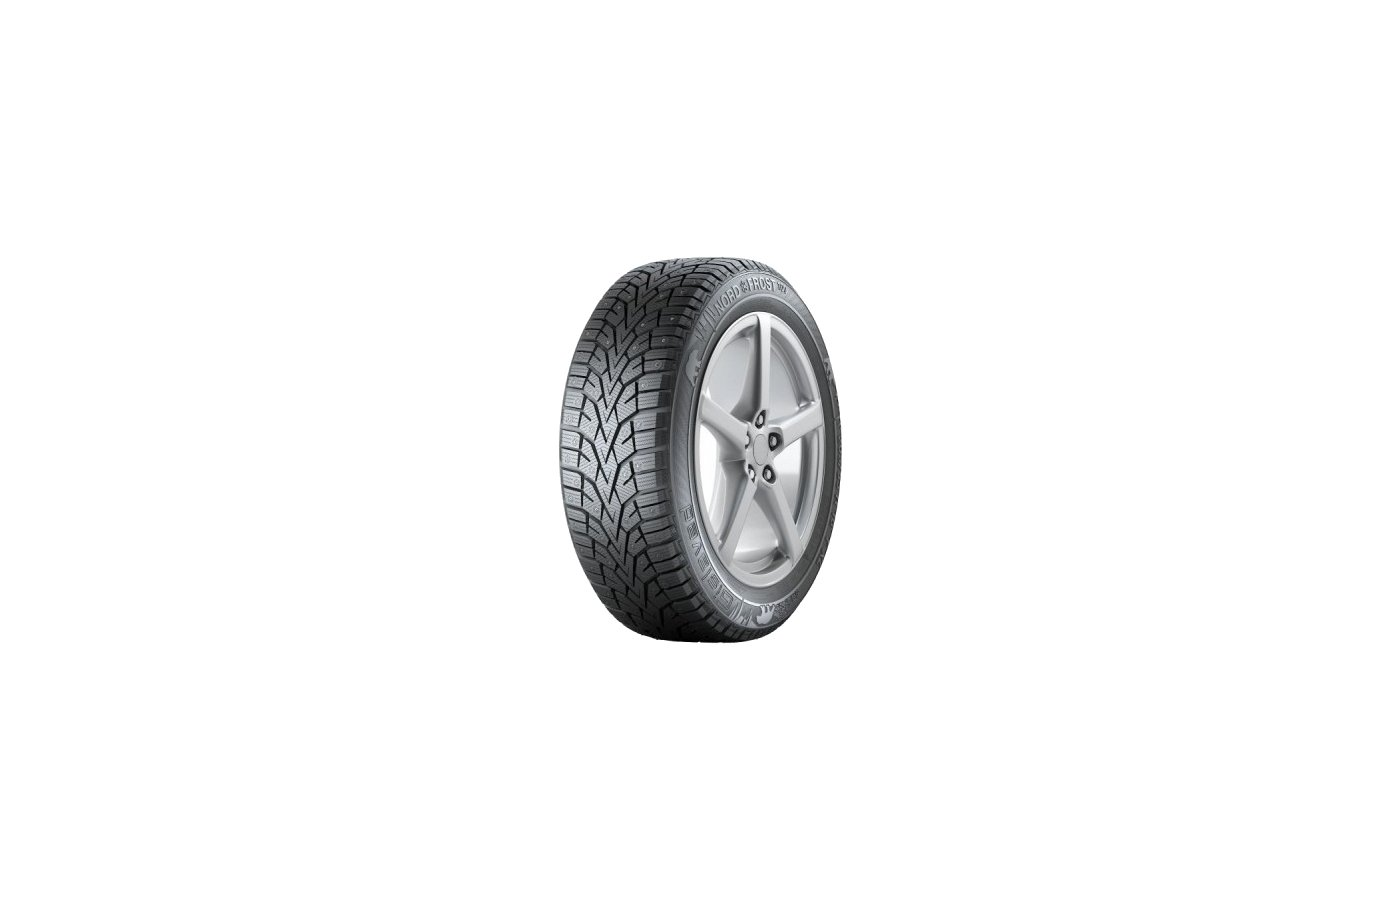 Шина Gislaved NordFrost 100 195/65 R15 TL 95T XL шип